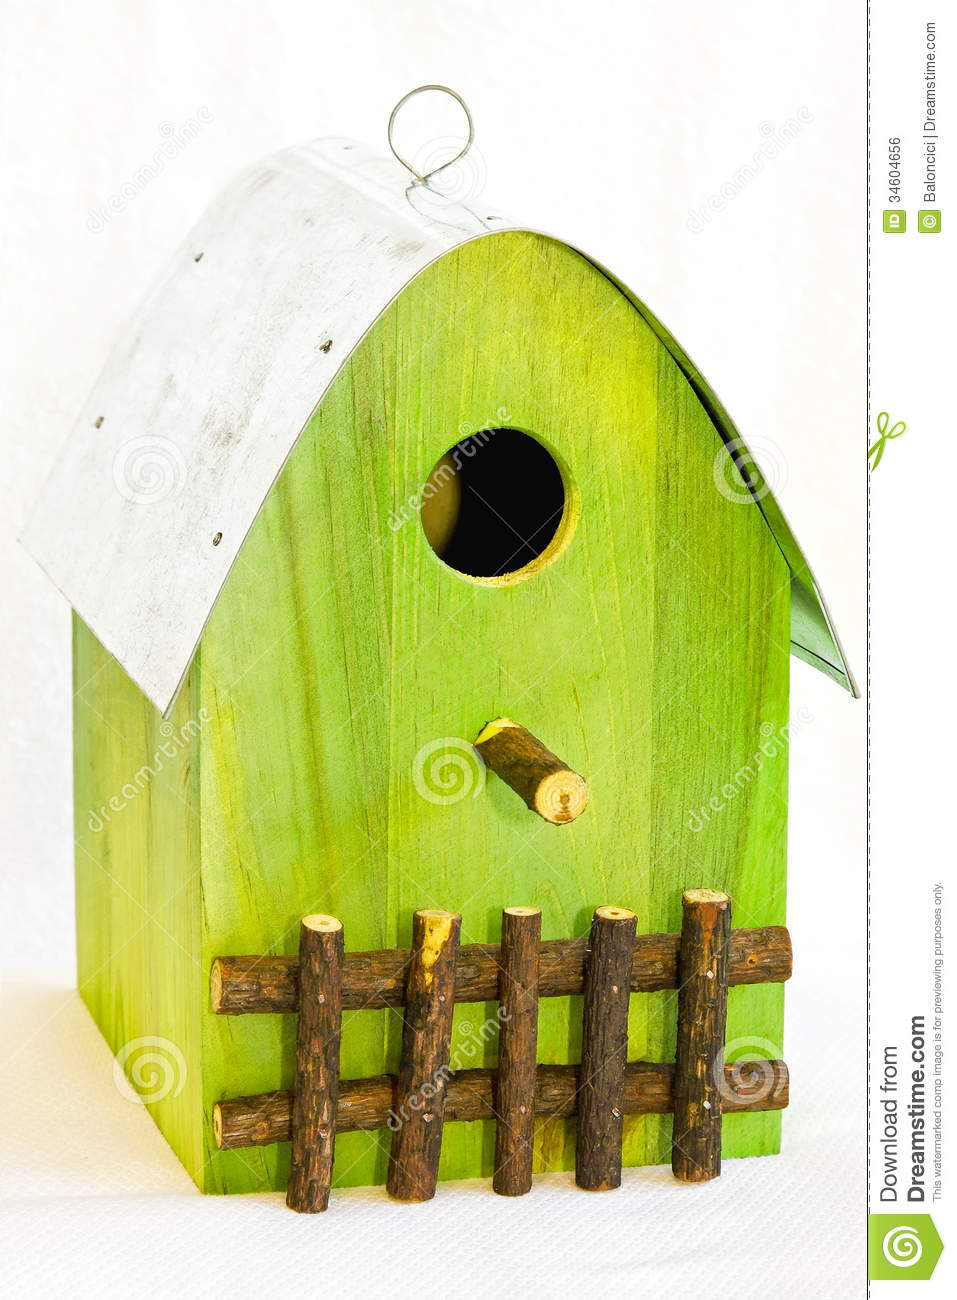 Bird House Royalty Free Stock Image - Image: 34604656